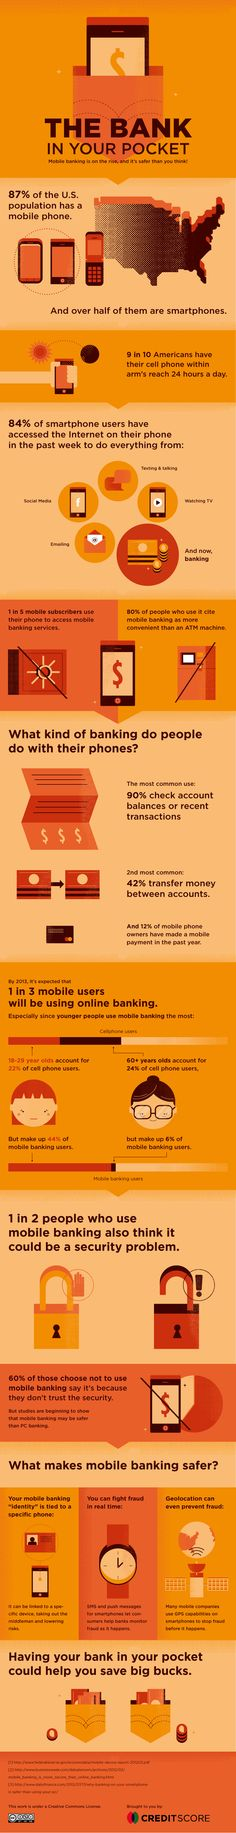 Mobile banking is safer than you think [CreditScore.Net] #banking #mobile